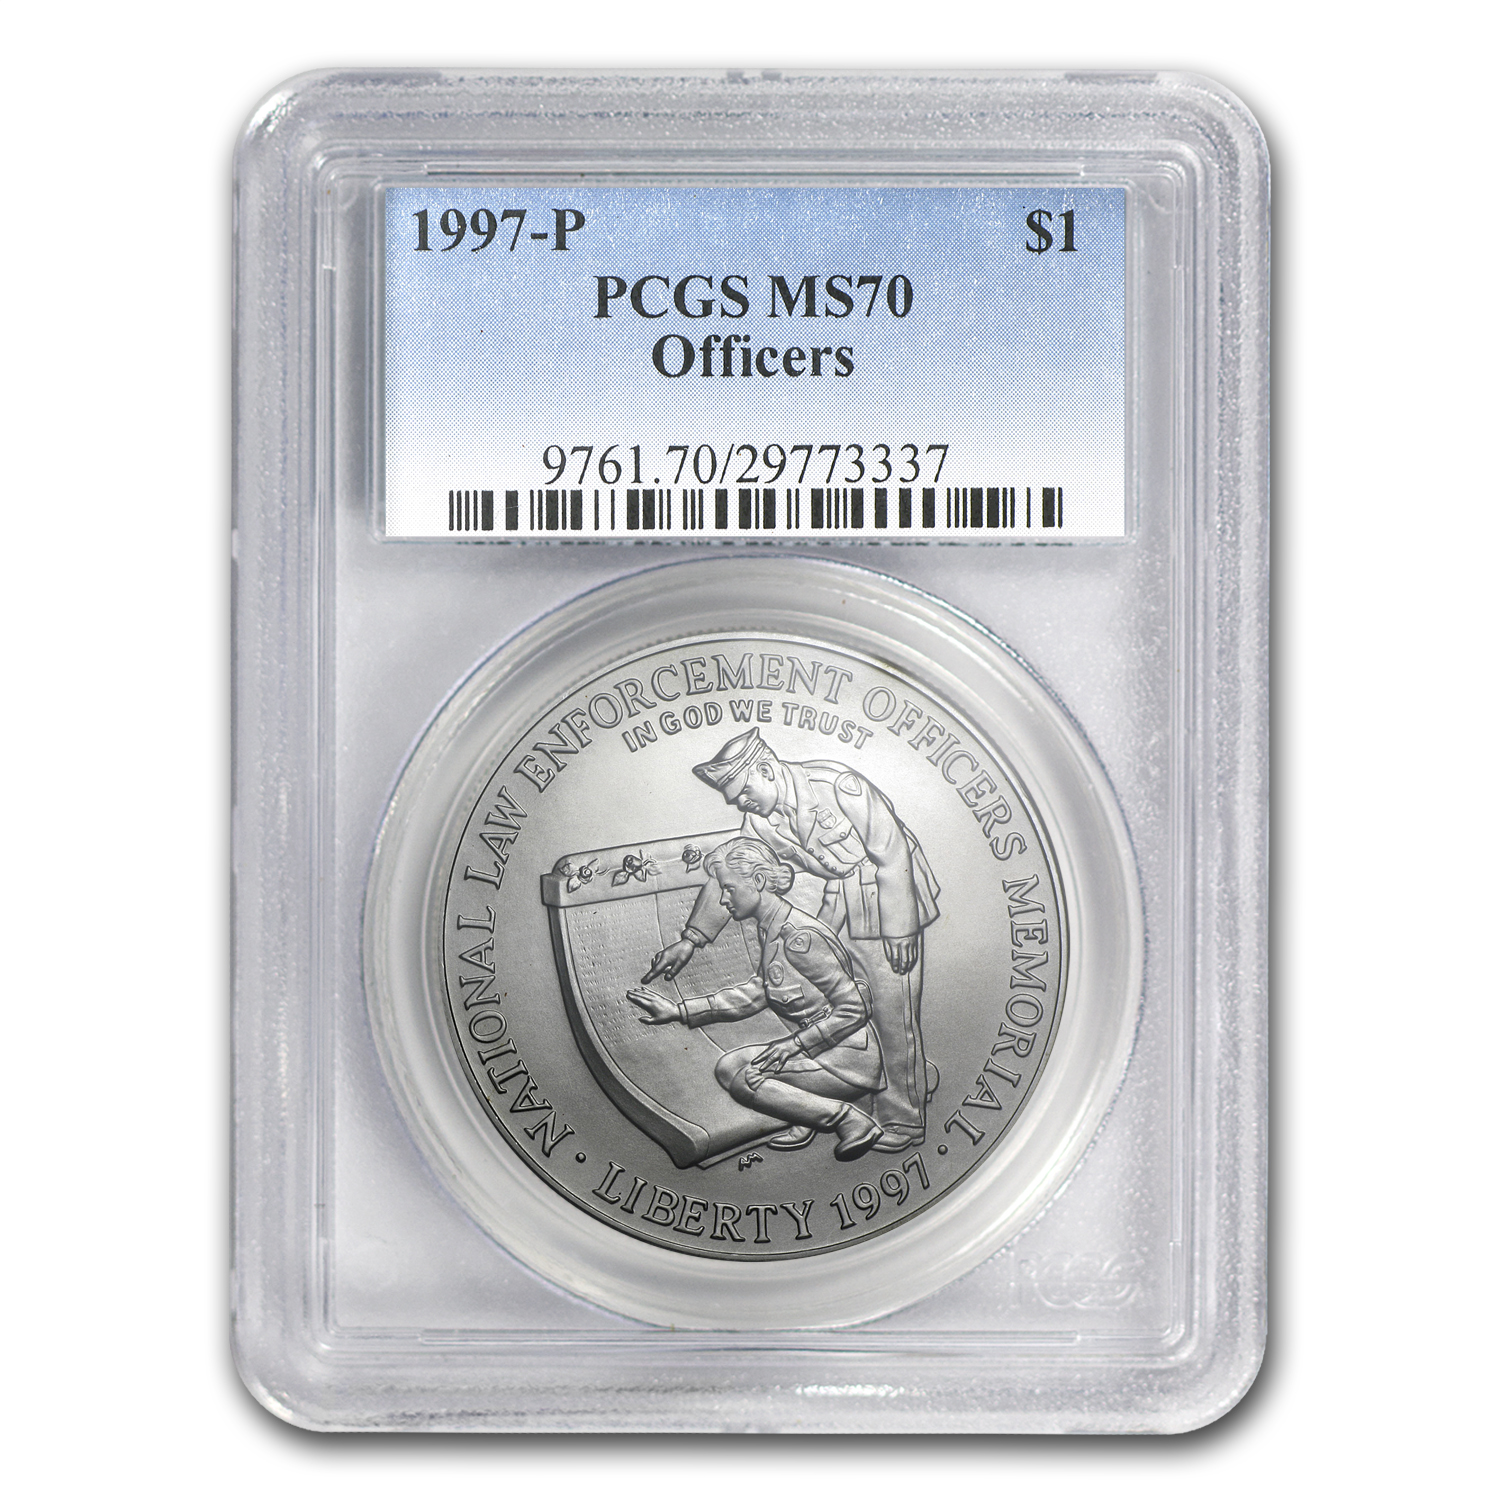 1997-P Law Enforcement $1 Silver Commemorative MS-70 PCGS